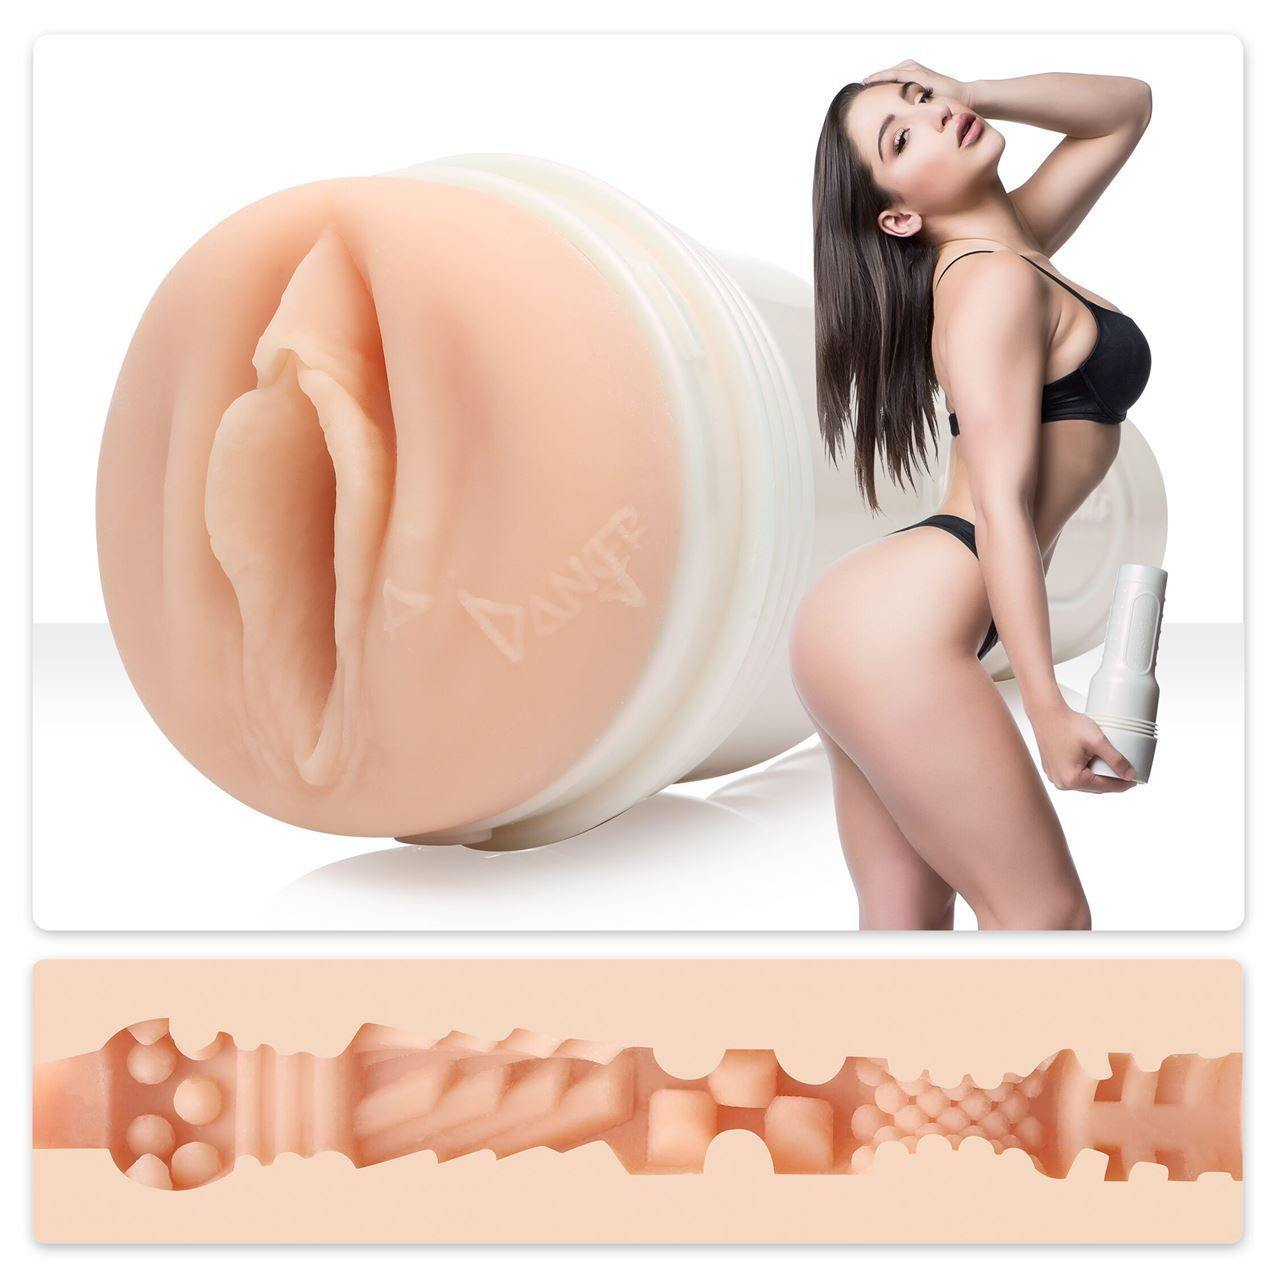 Fleshlight Girls - Abella Danger Danger - RedSatinUK